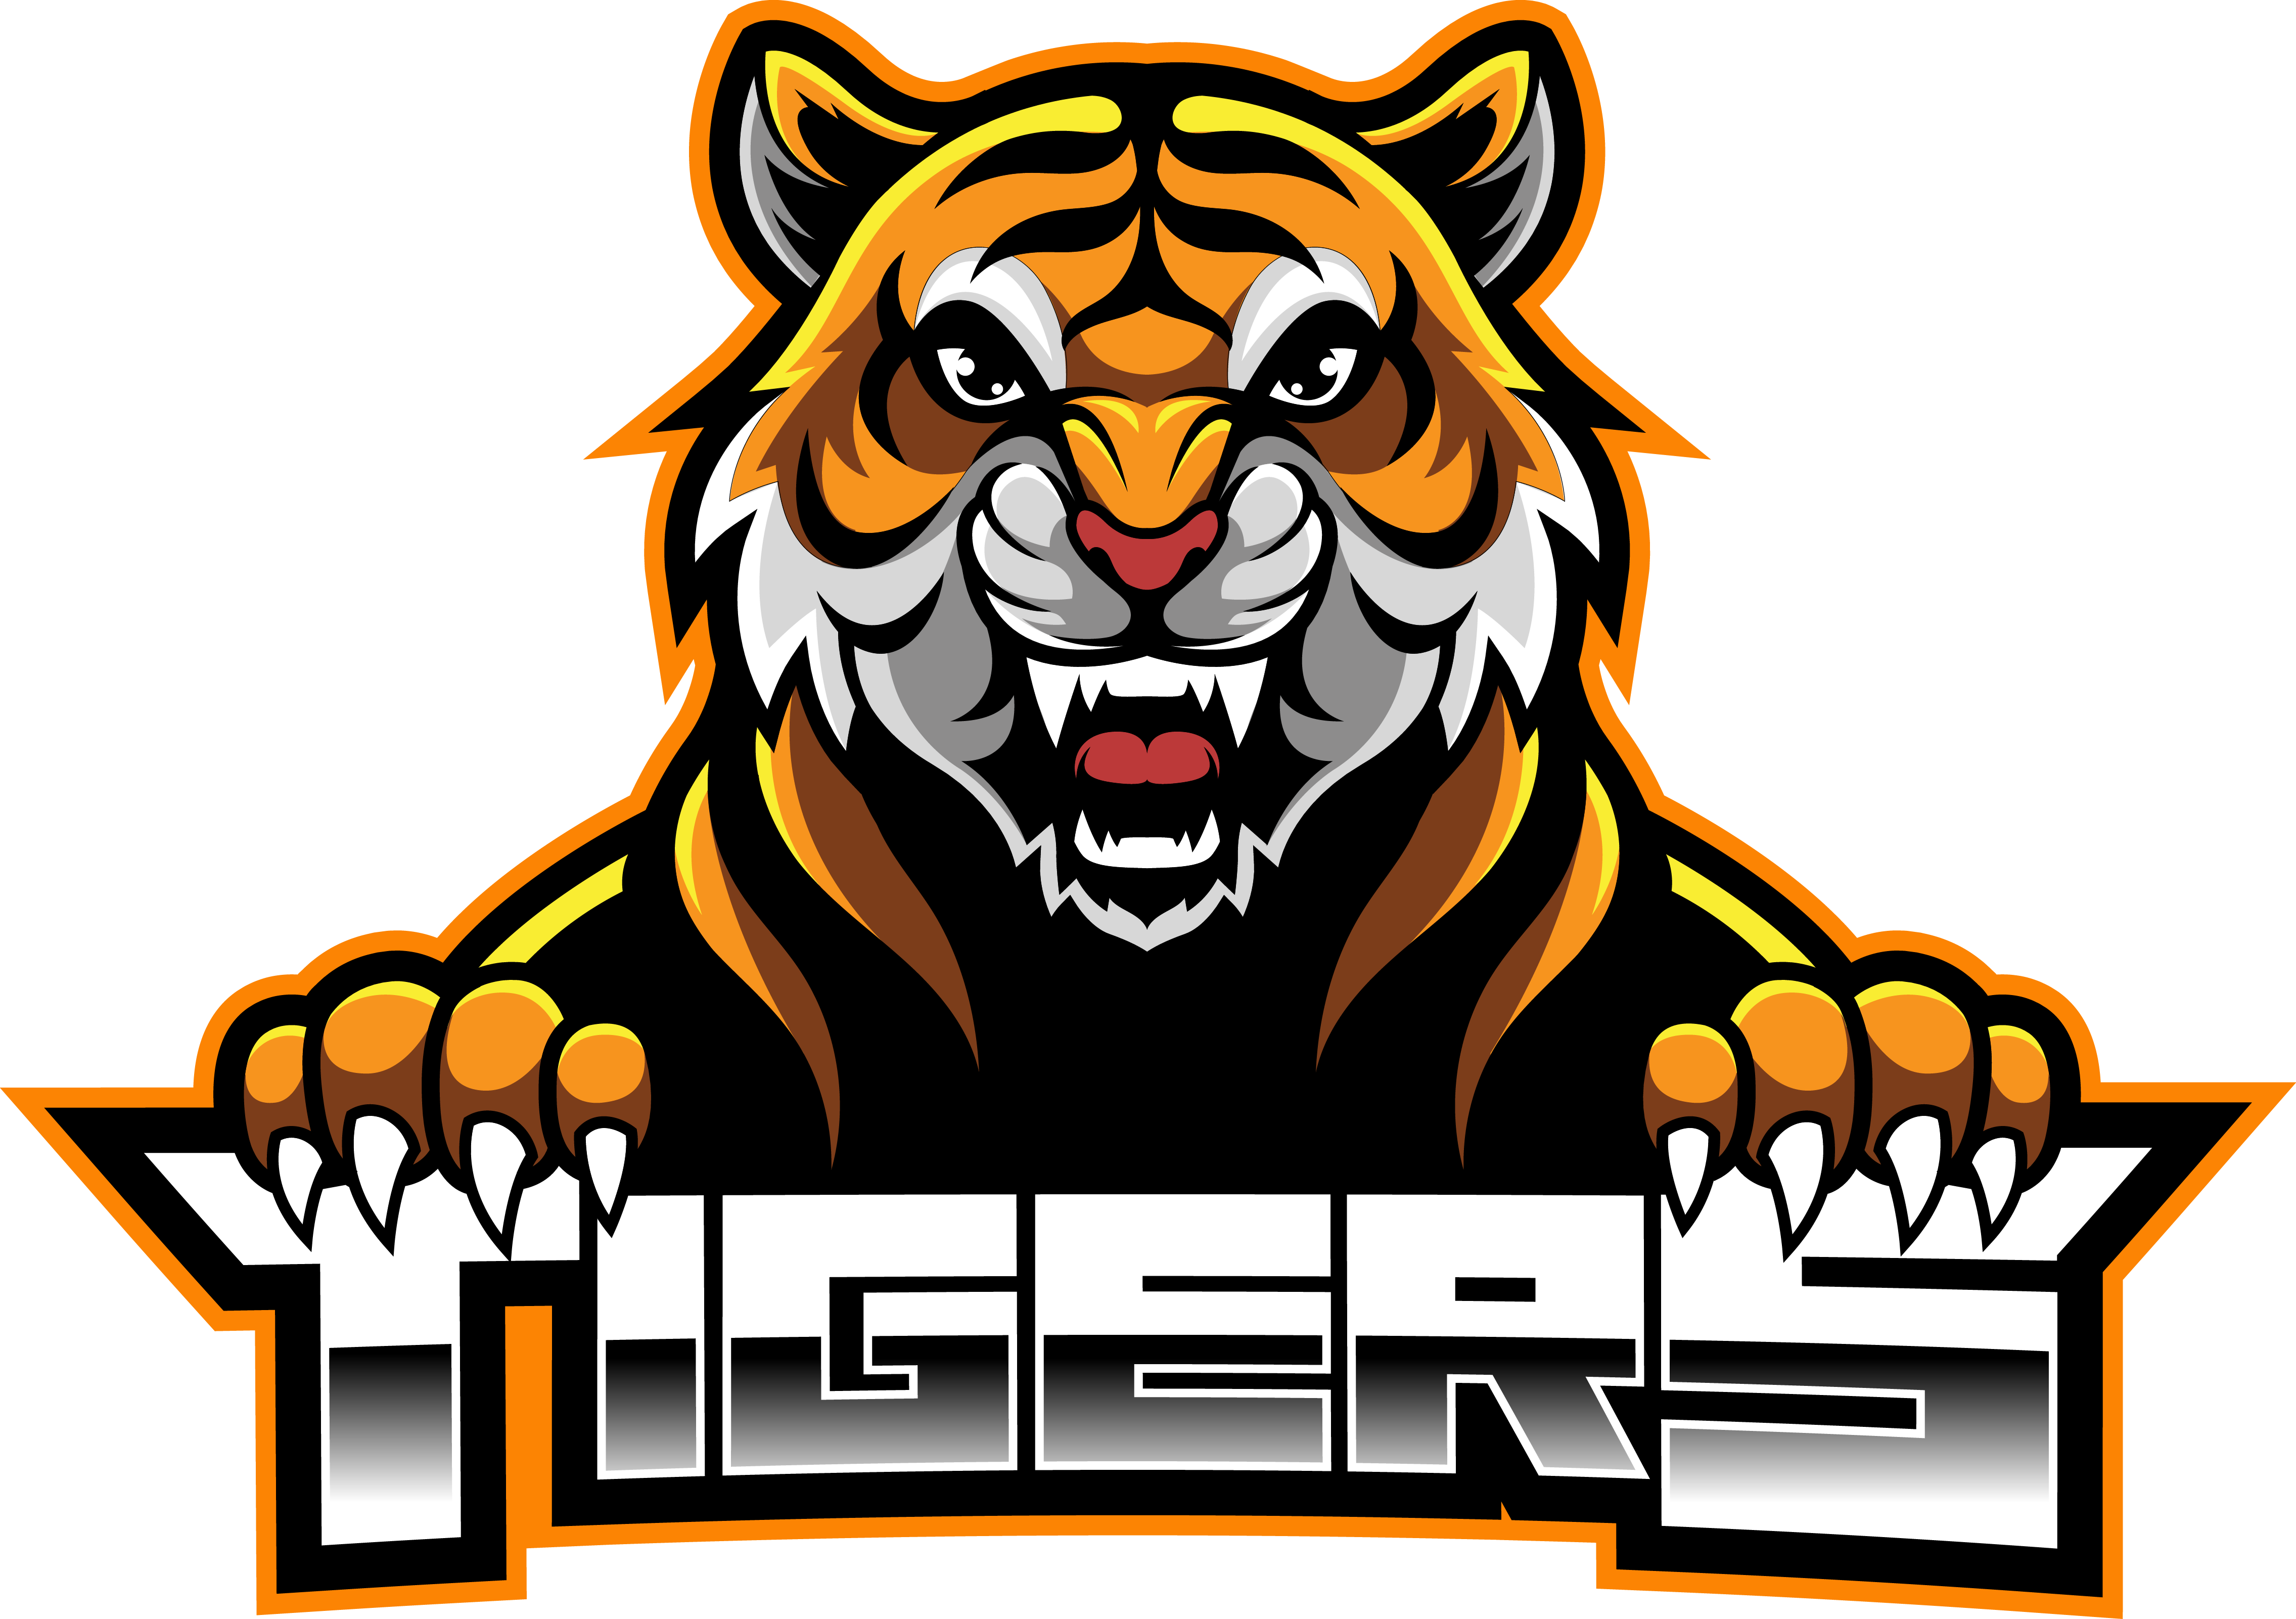 tiger face esport mascot logo design by visink thehungryjpeg com tiger face esport mascot logo design by